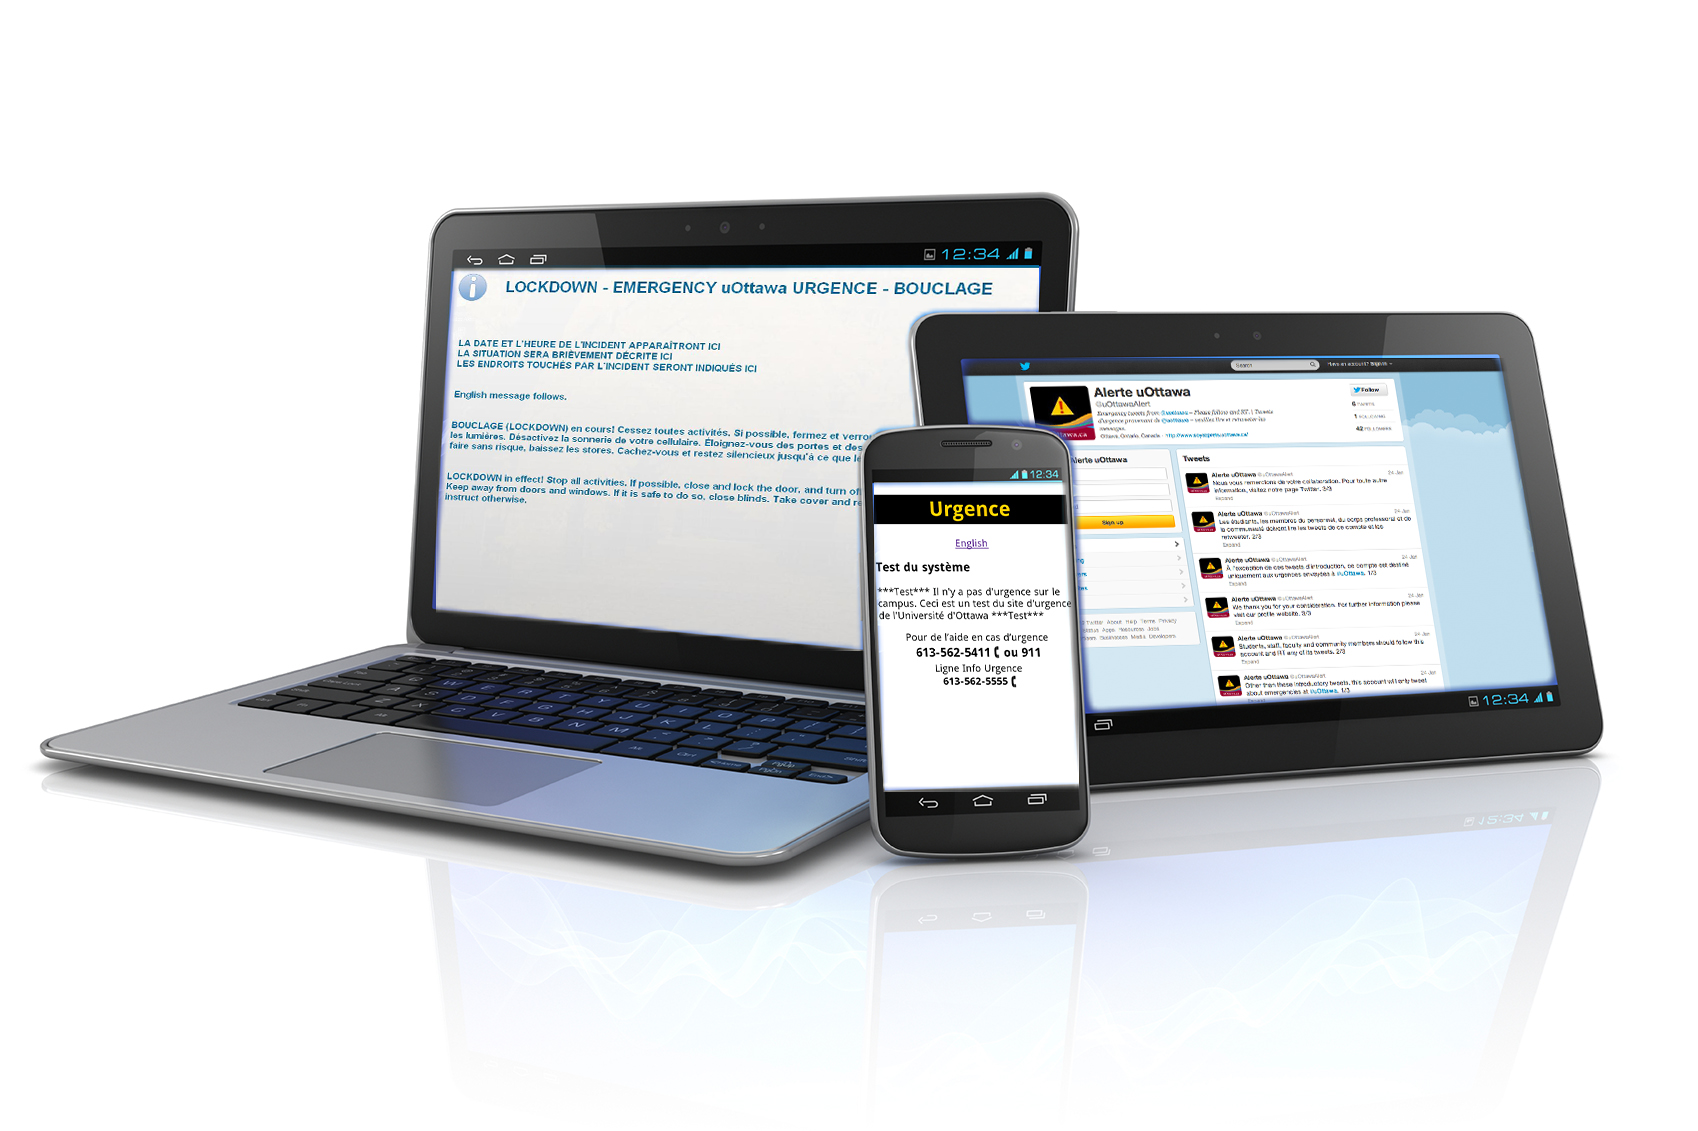 7.Picture of a uoAlert message on various  mobile devices including a tablet, laptop and cellphone